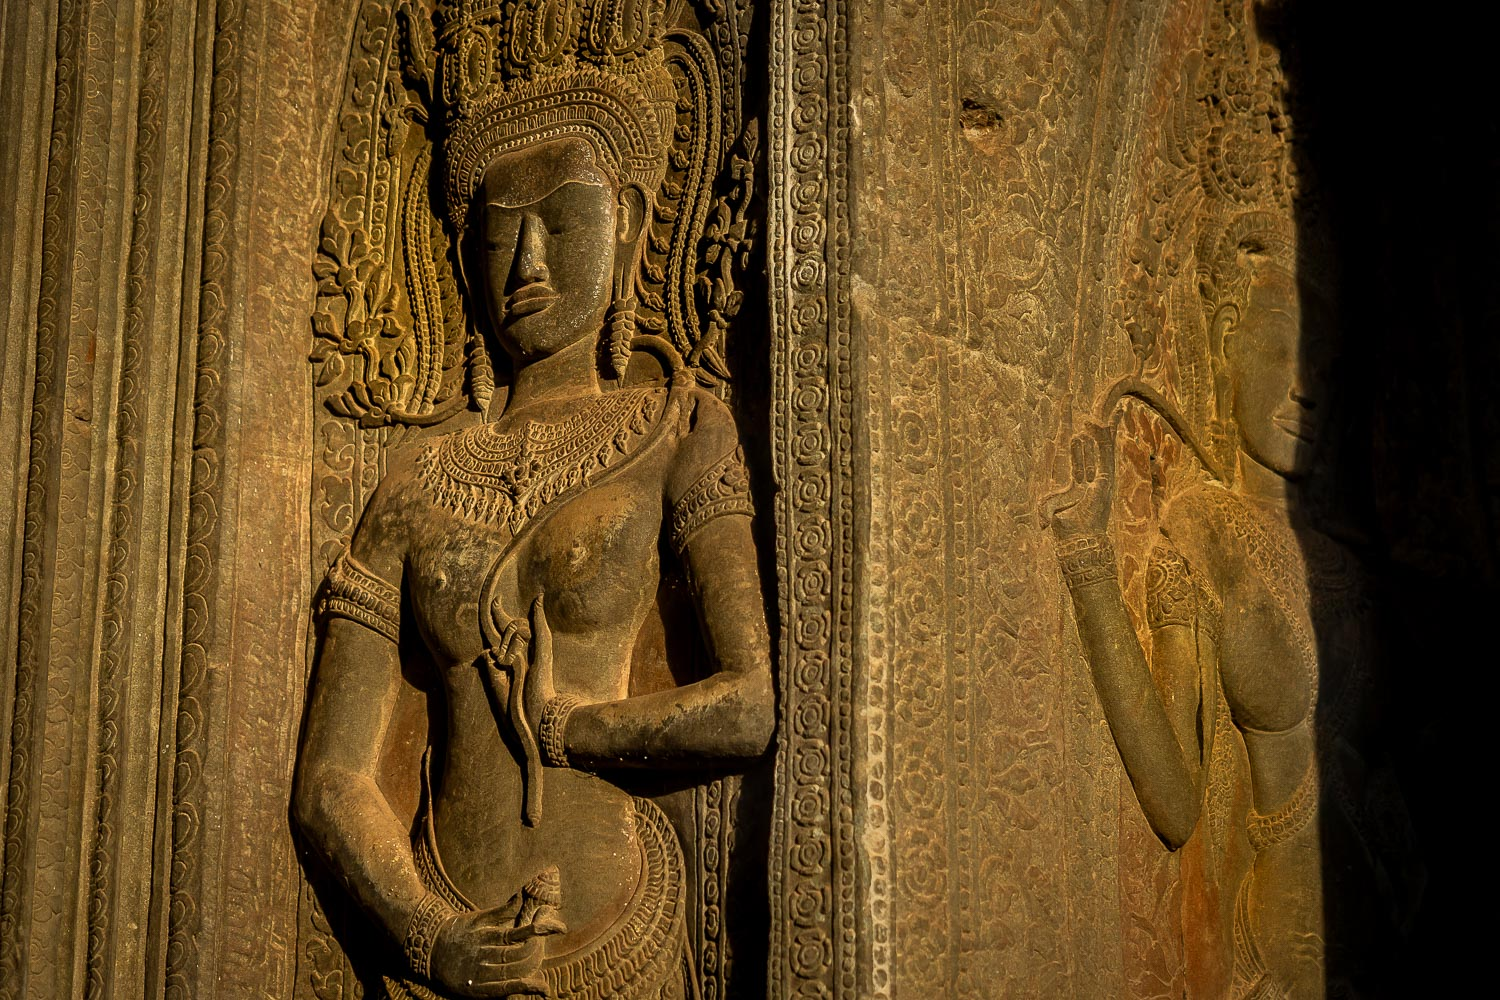 Apsaras wall carvings at Angkor Wat, Angkor, Cambodia.